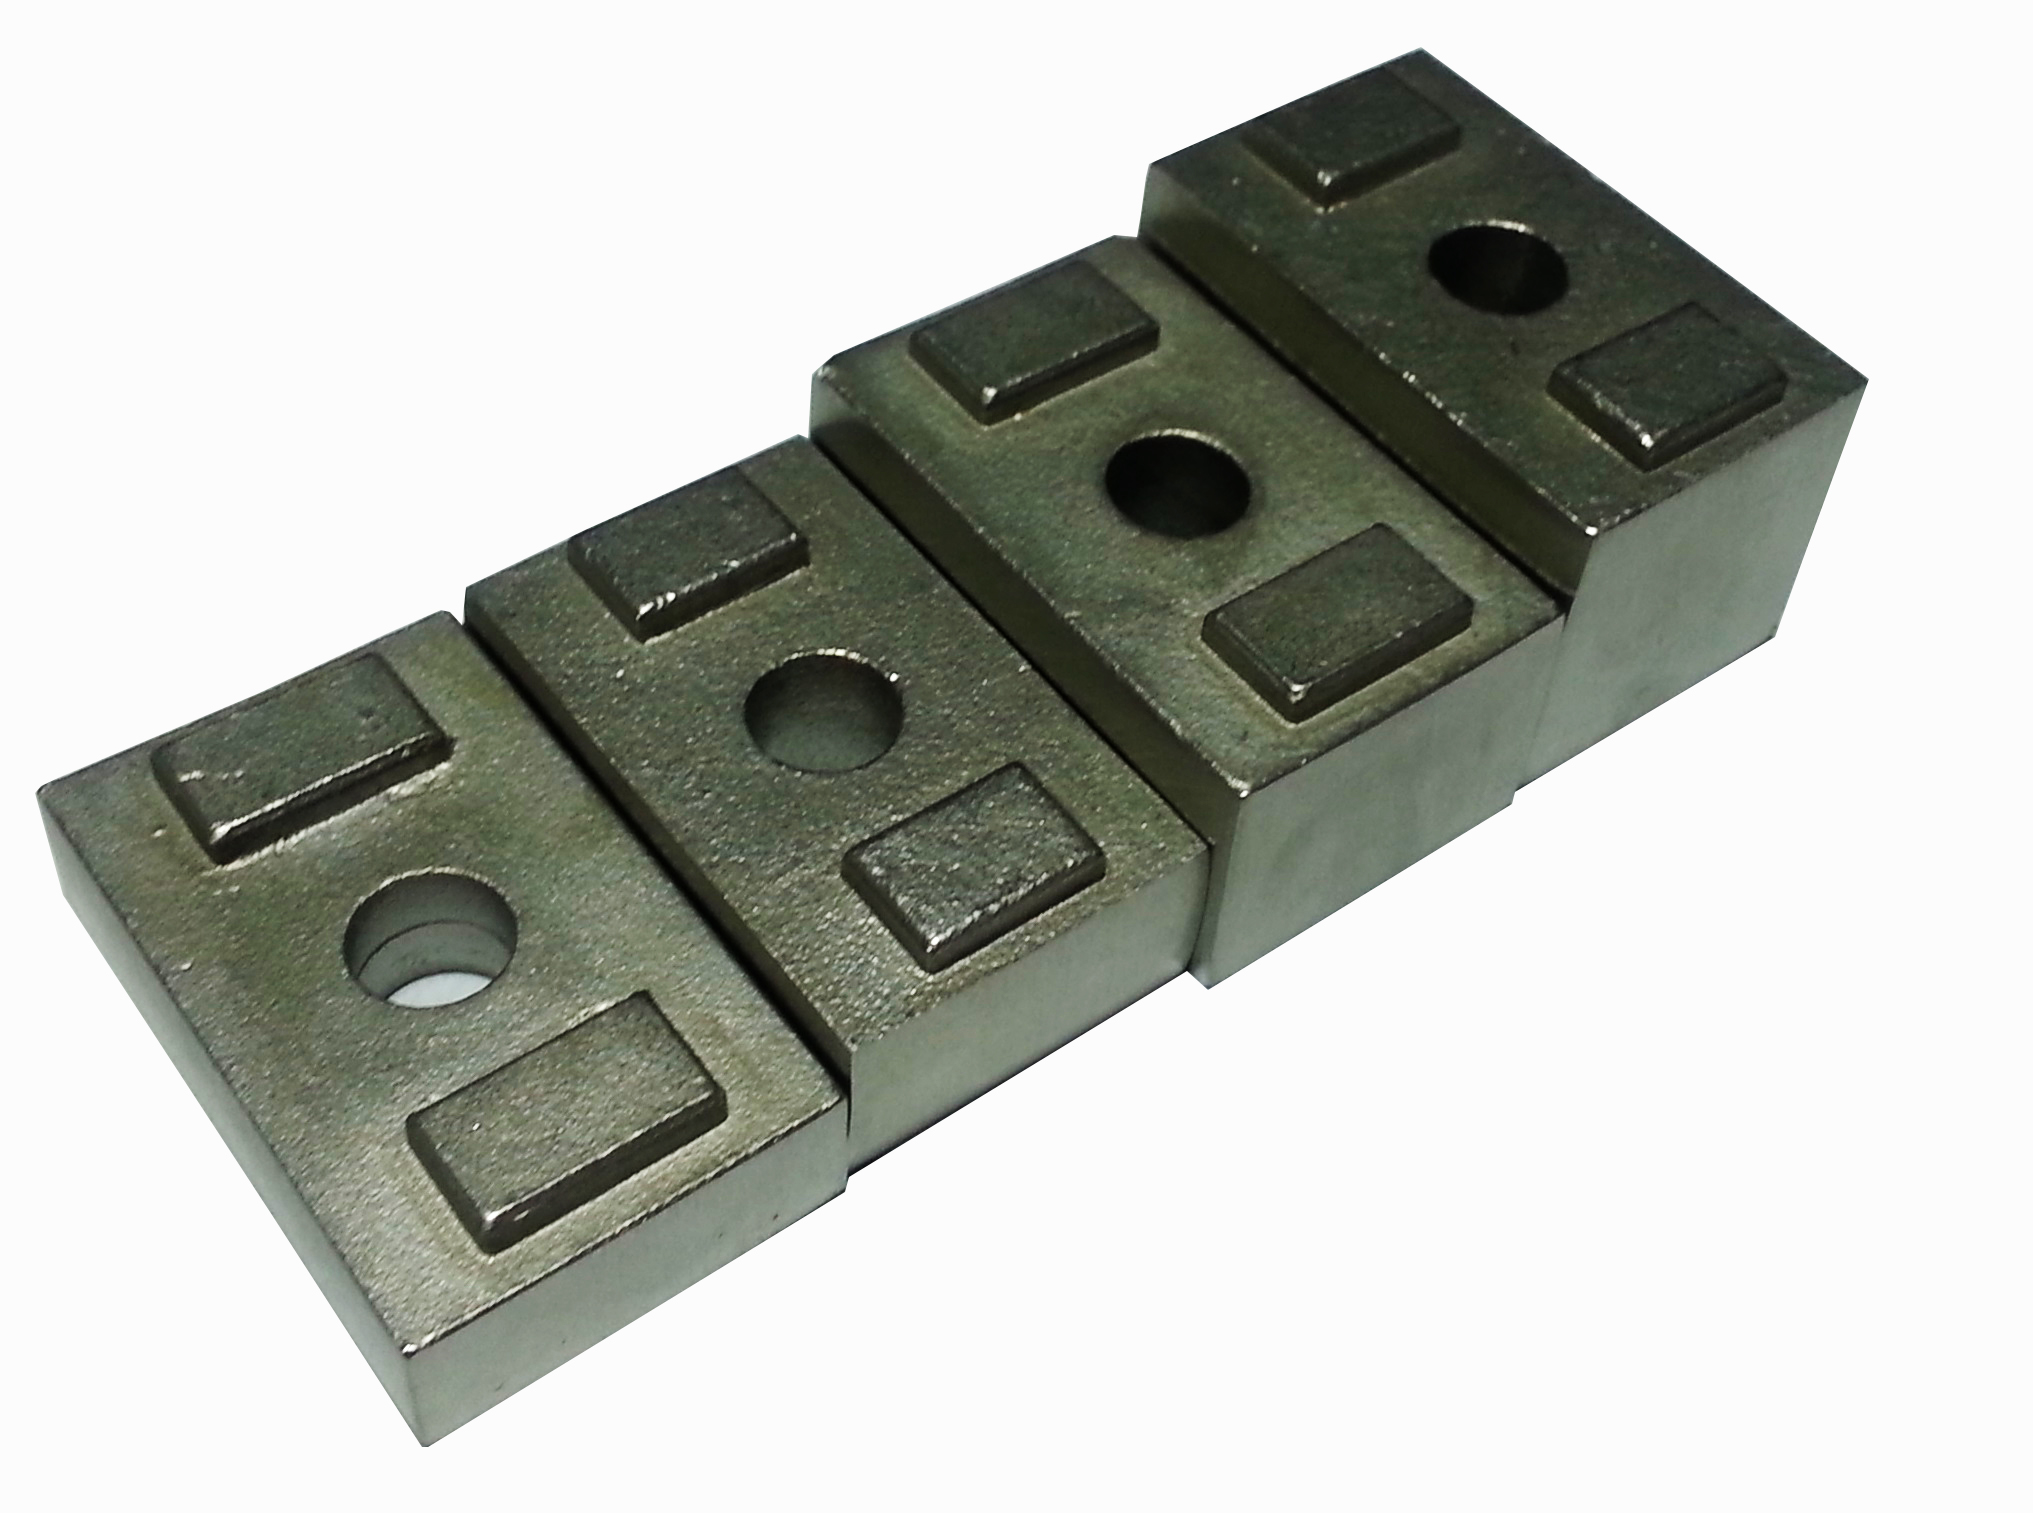 Invisirail 10mm spacer for glass clamps